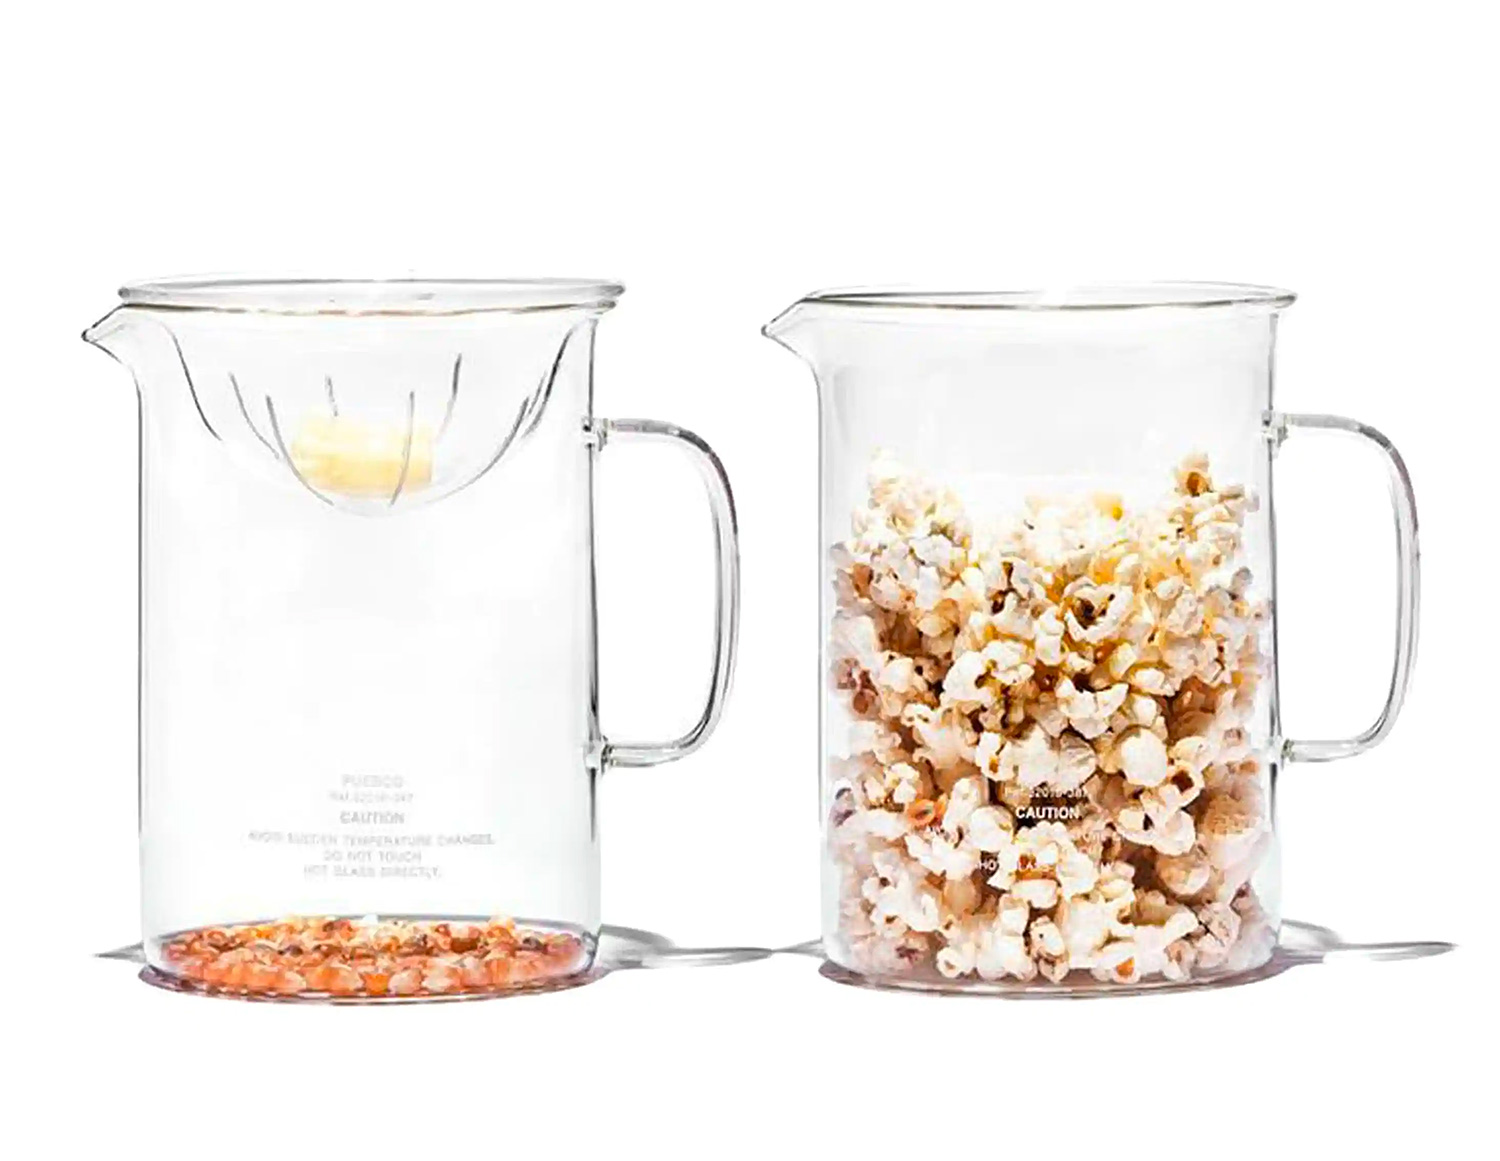 This Glass Popcorn Maker is Clearly Cool at werd.com